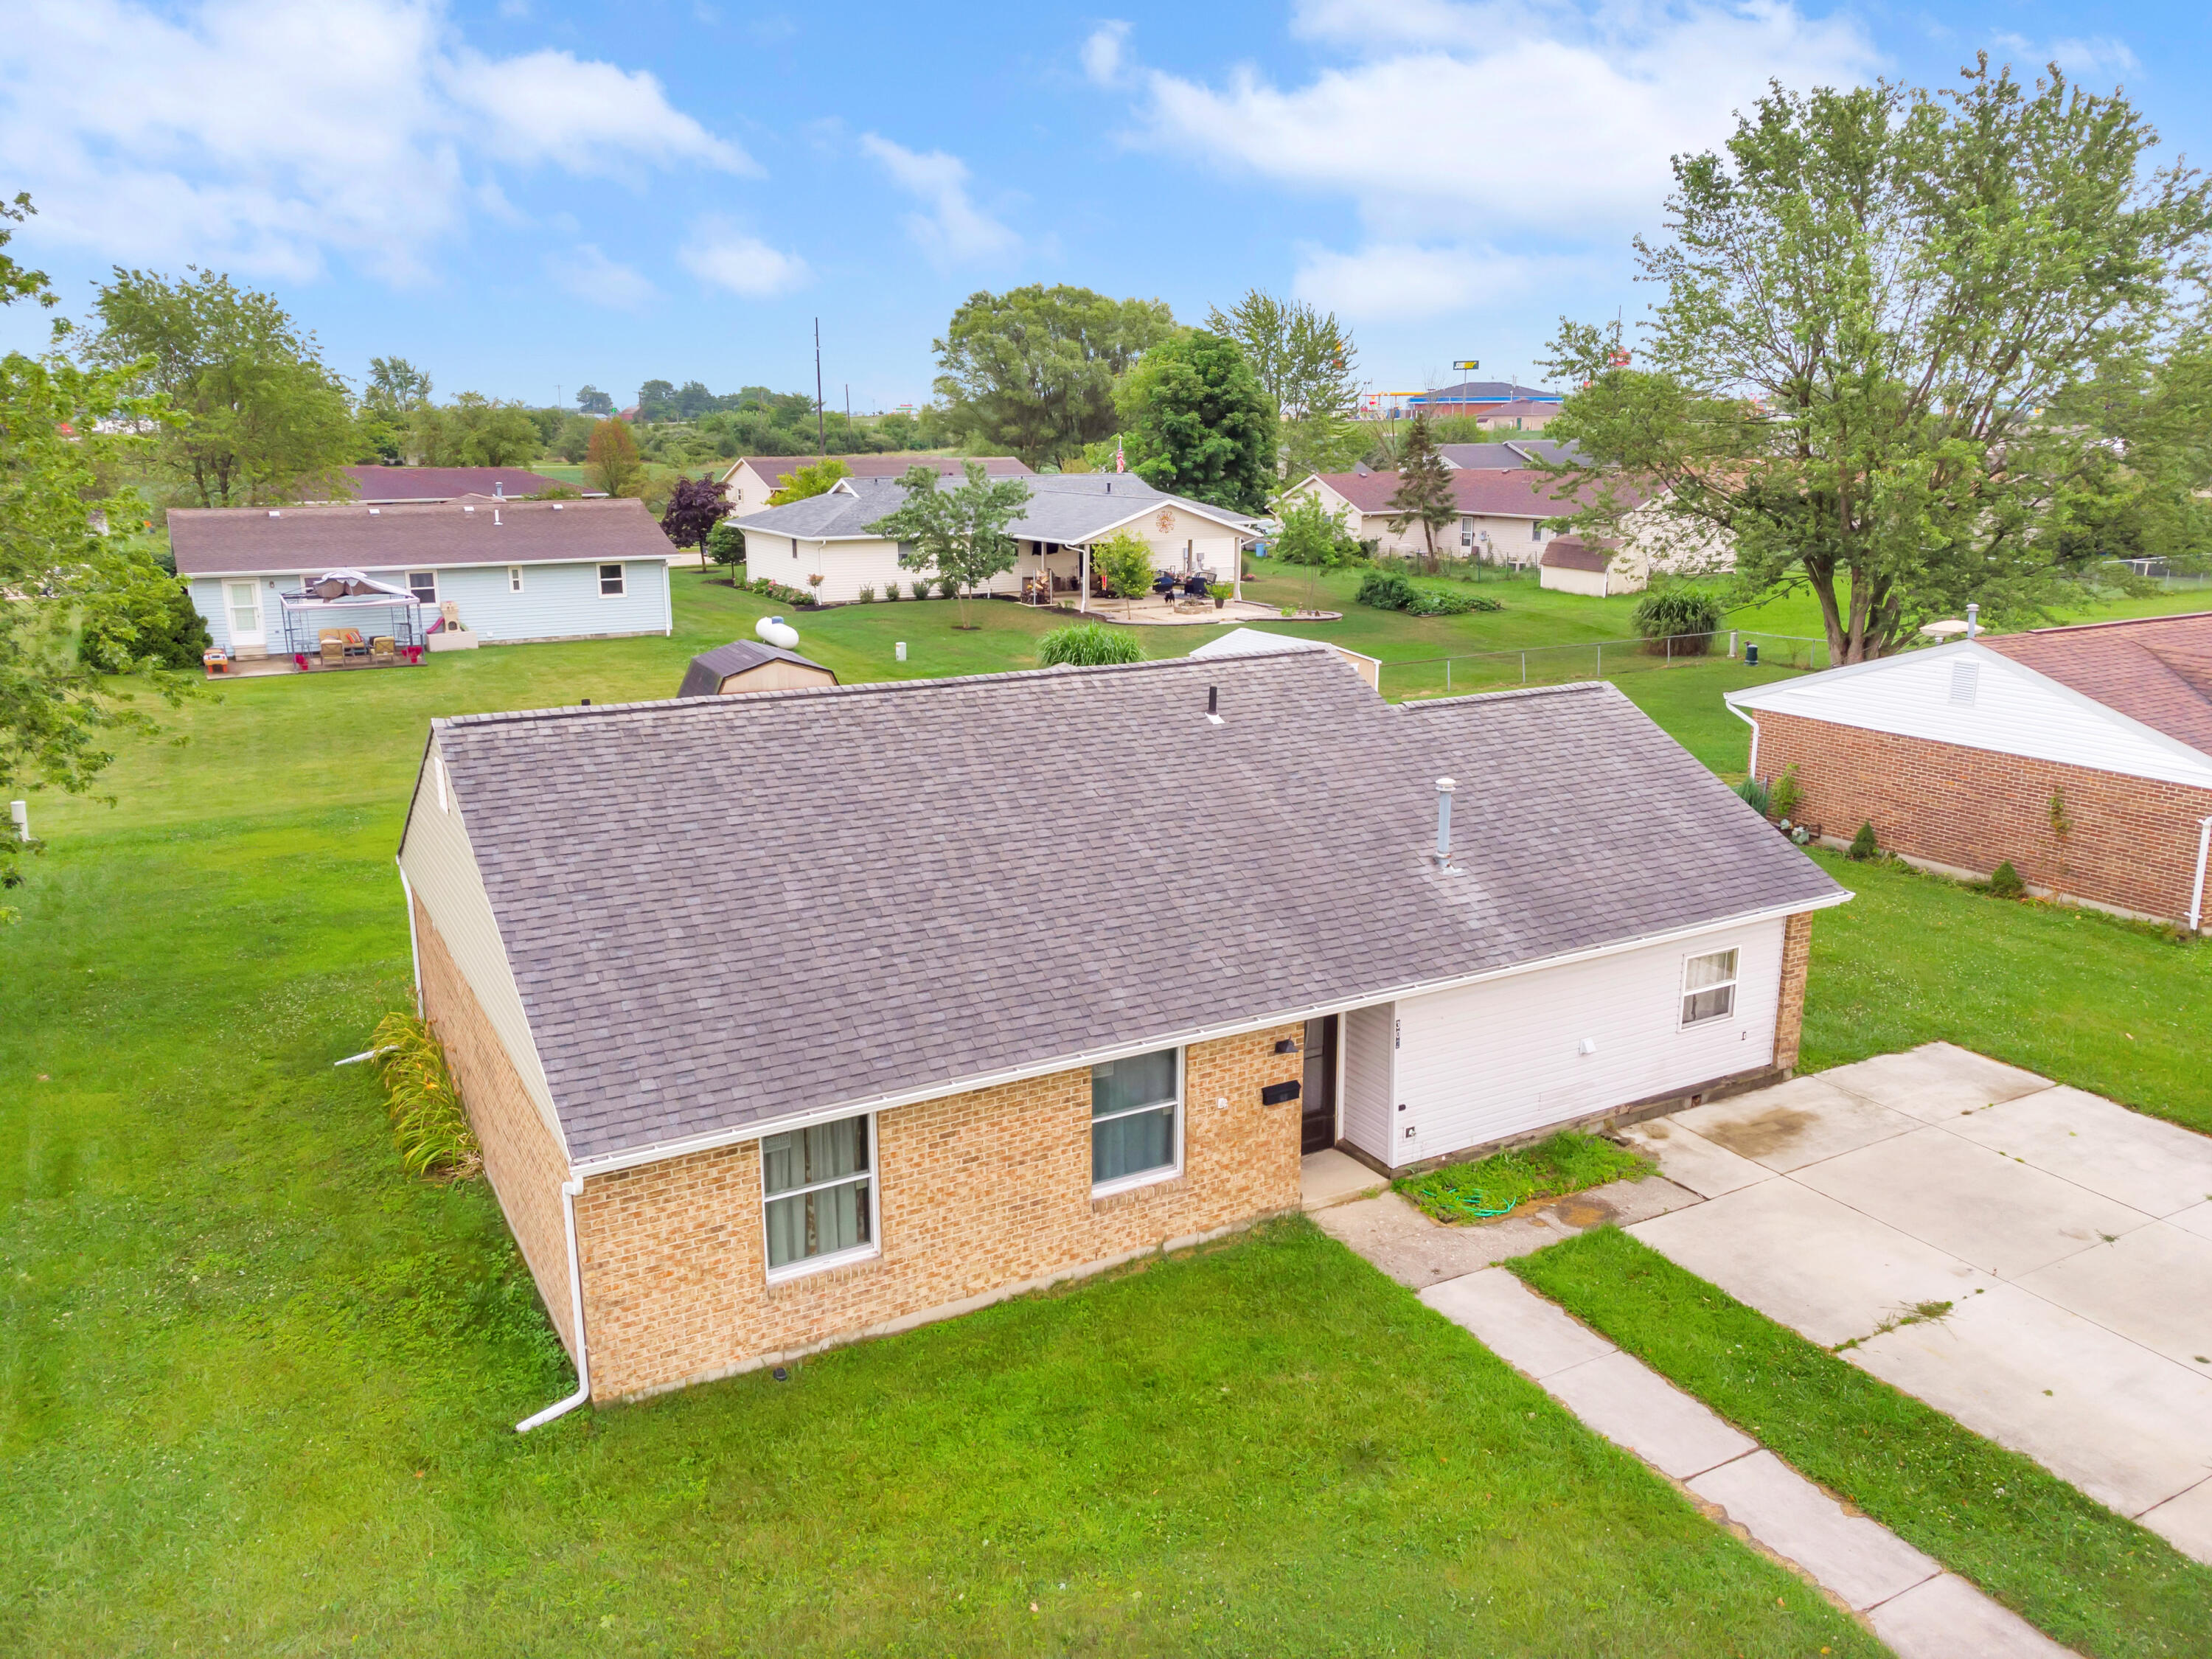 Photo 2 for 302 Meadowview Ln Anna, OH 45302